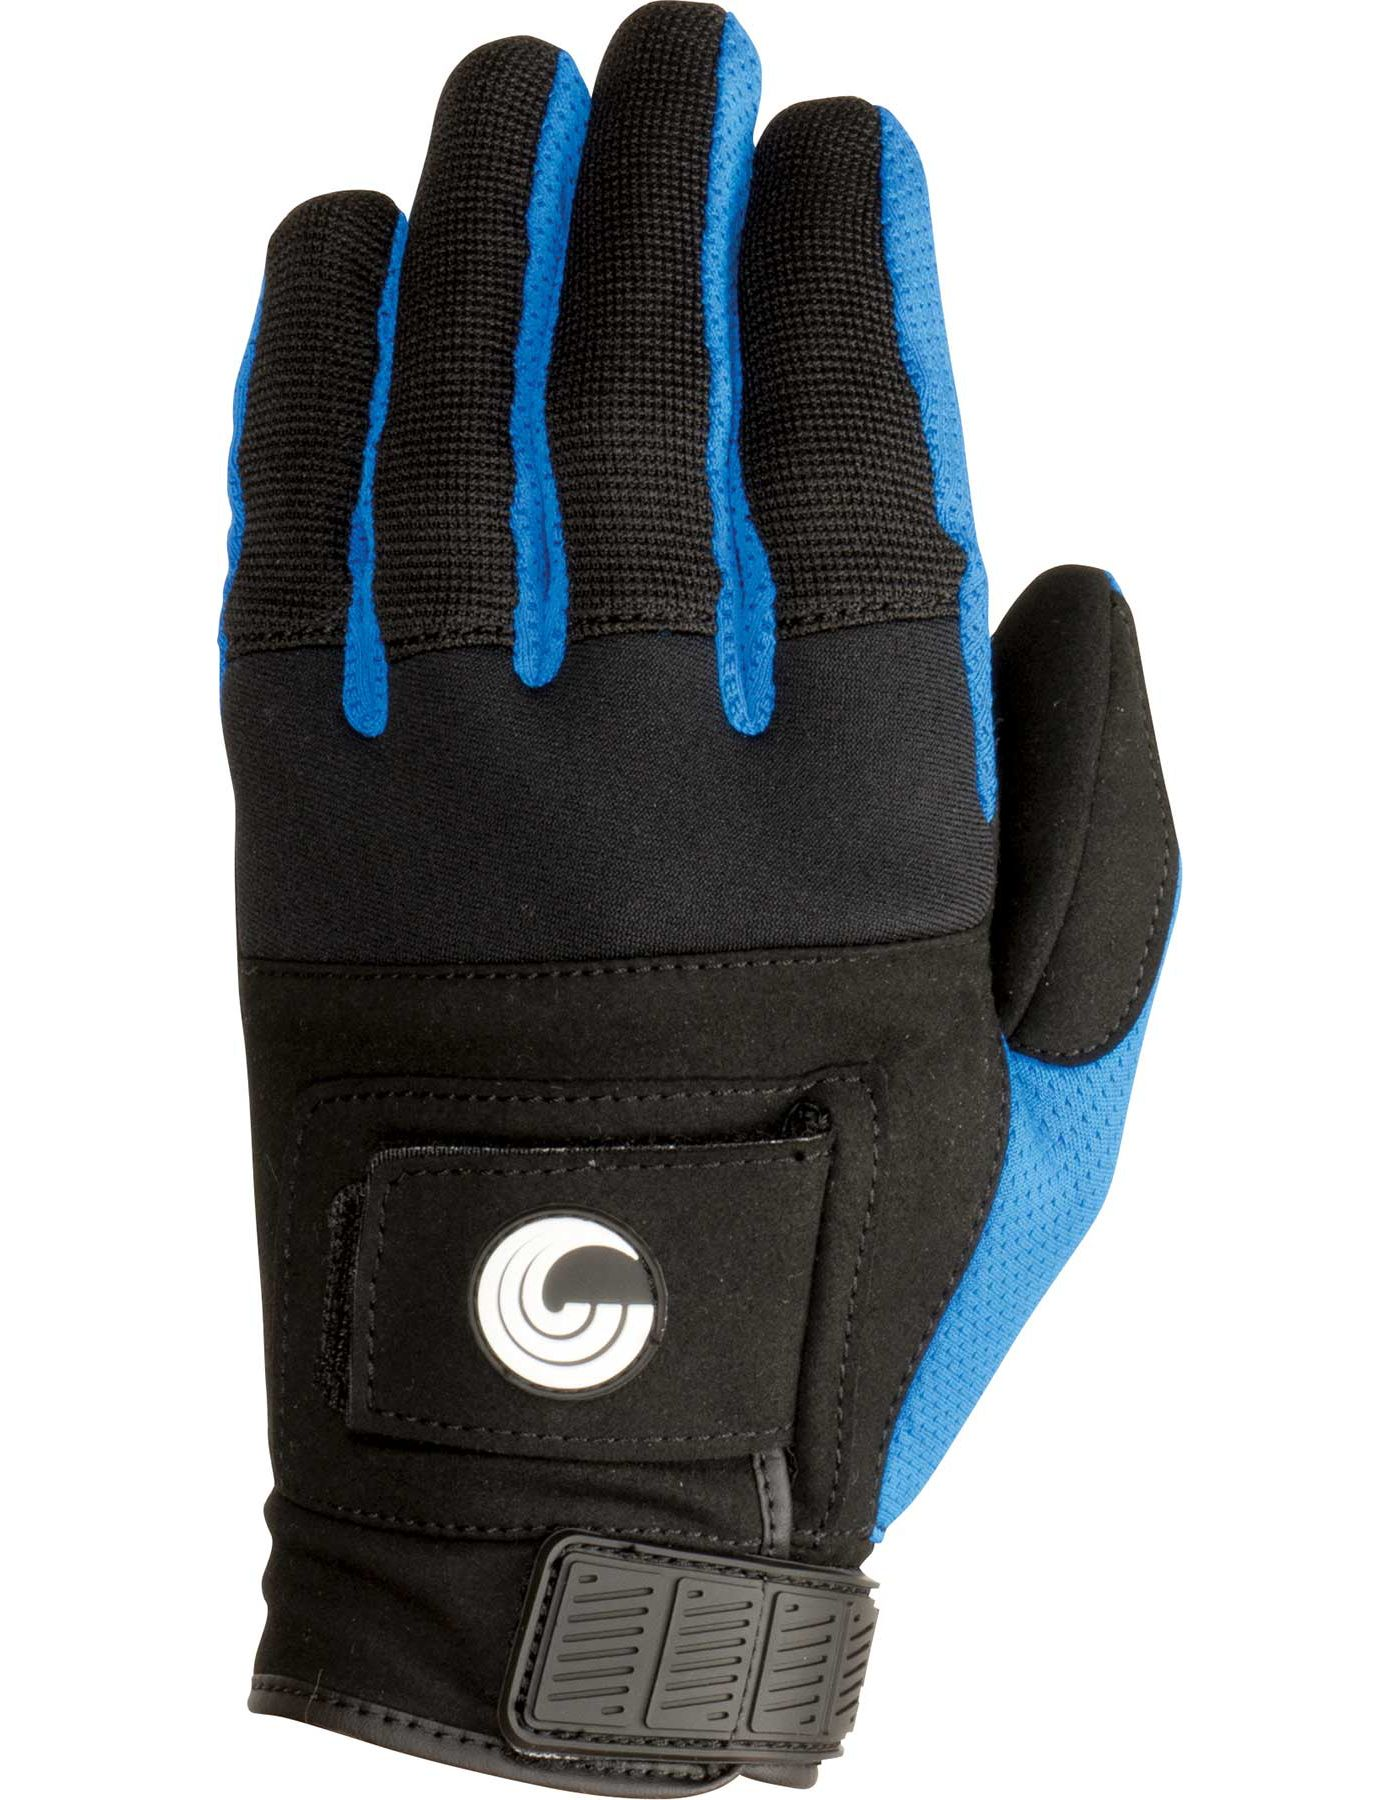 Connelly Men's Promo Water Ski Gloves